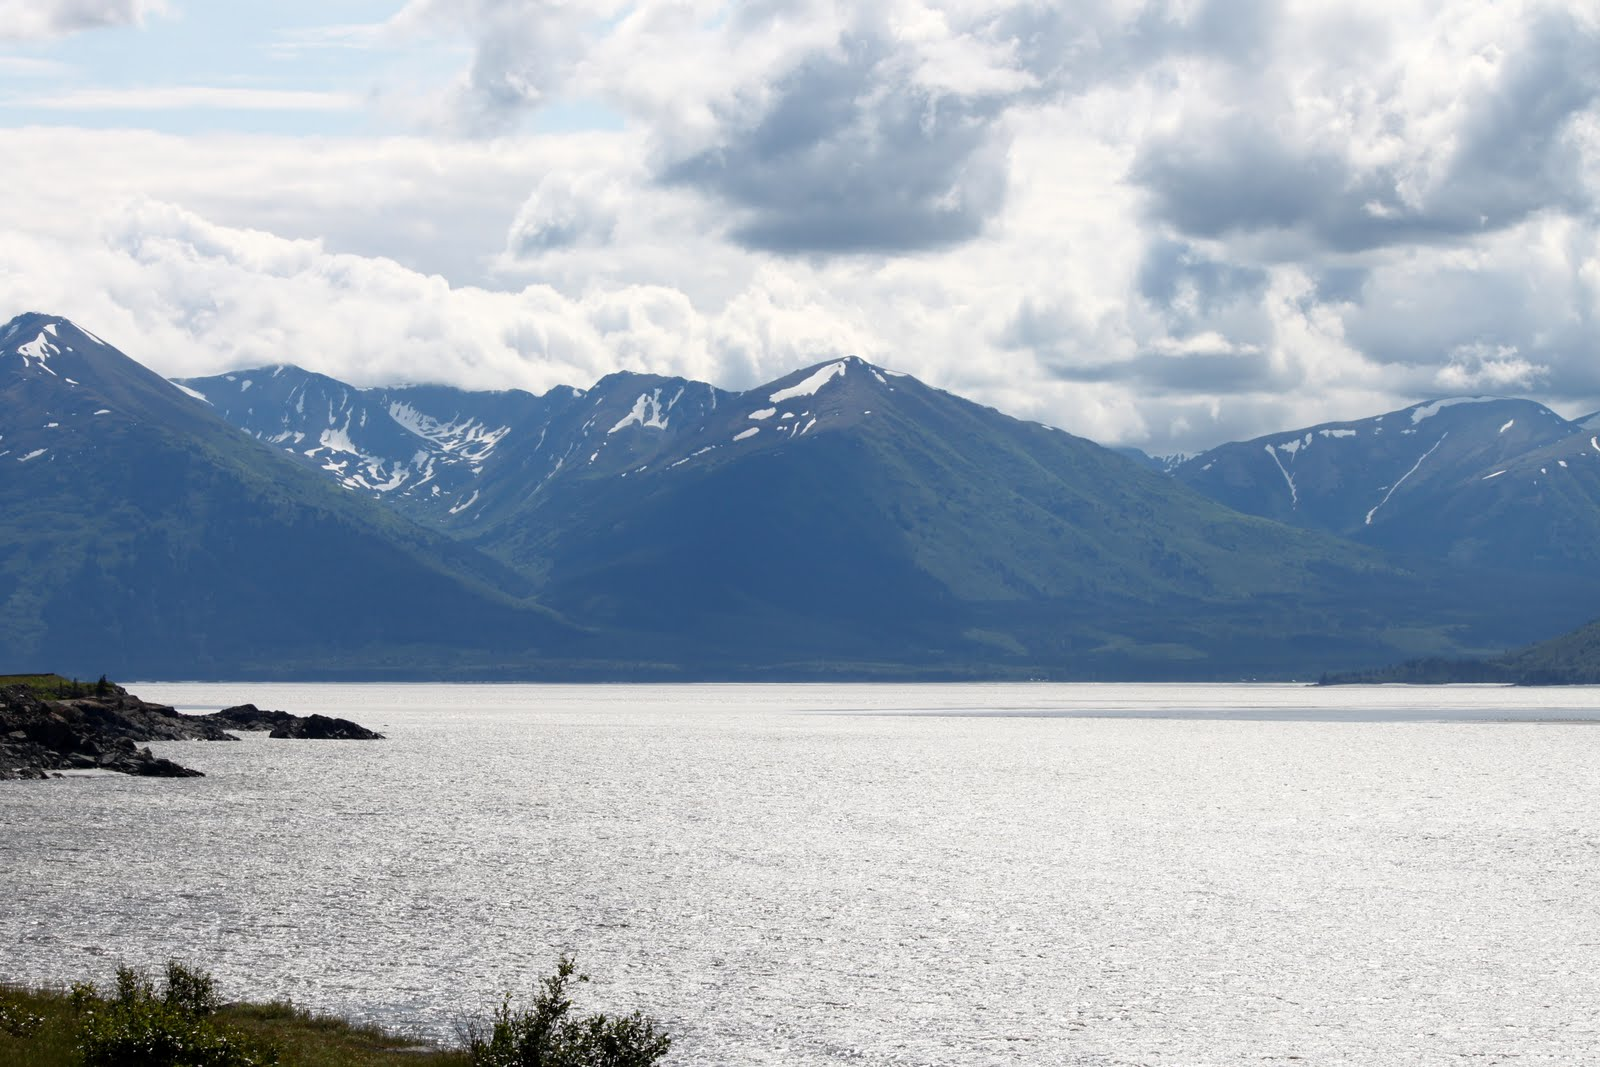 Rv Alaska 2011 Day 39 Turnagain Arm